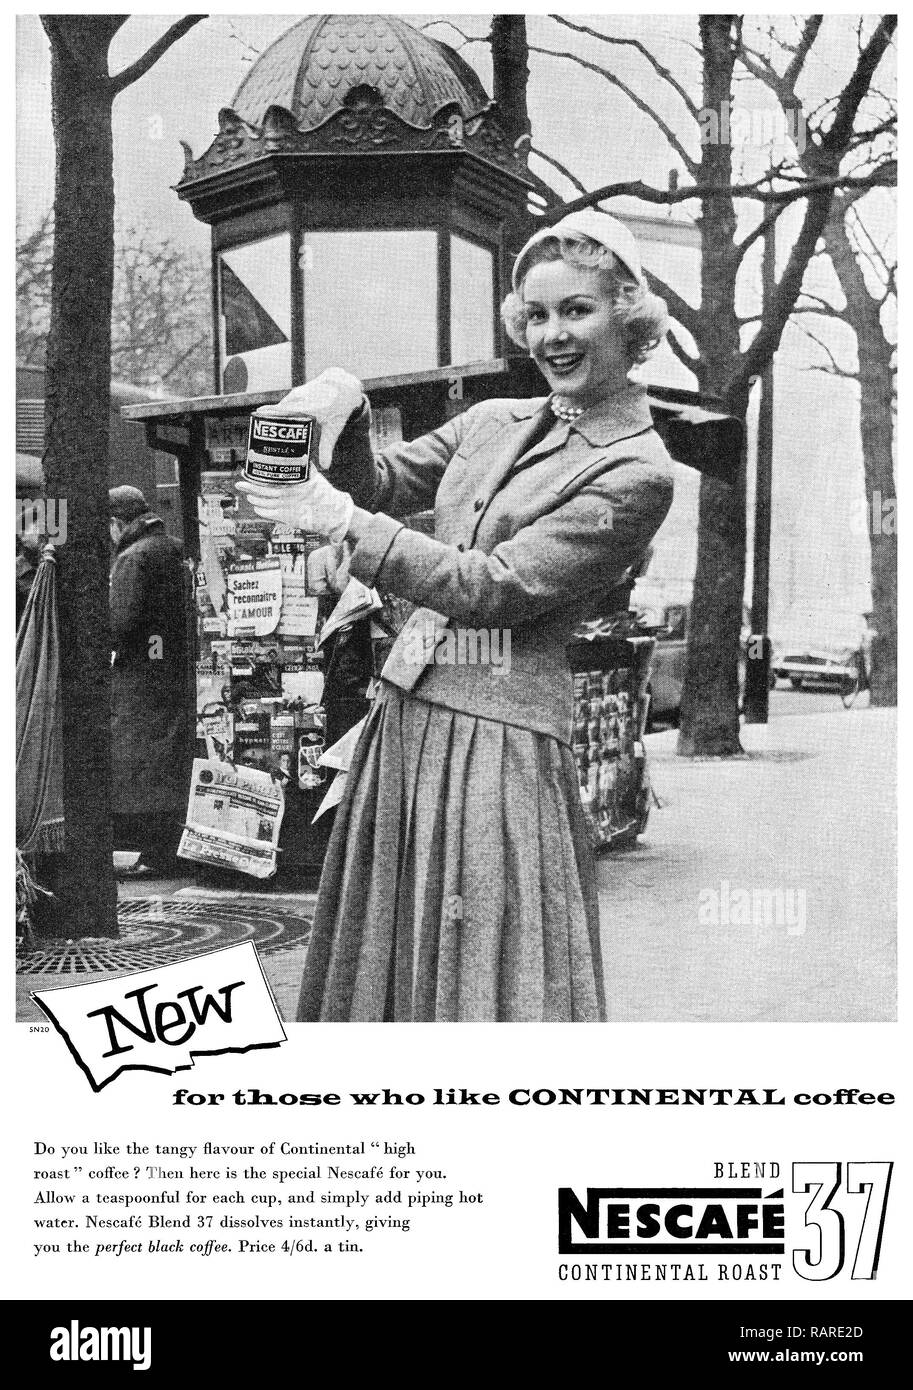 1956 British advertisement for Nescafé Blend 37 continental roast instant coffee. - Stock Image